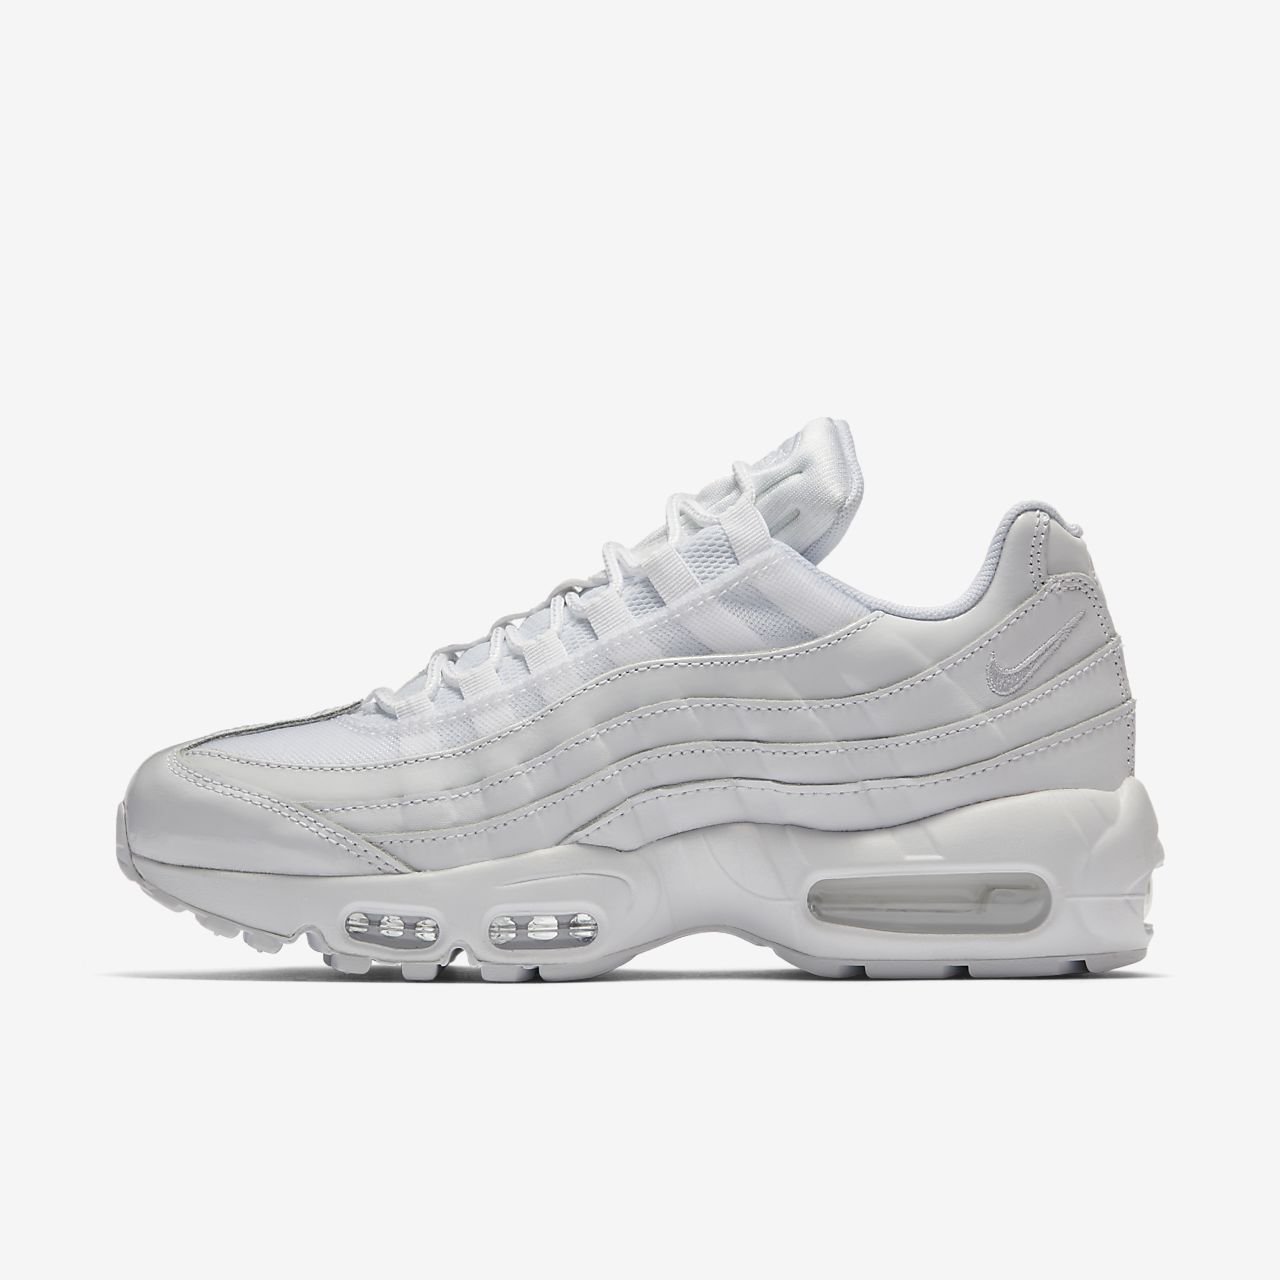 nike air max 95 zwart en wit